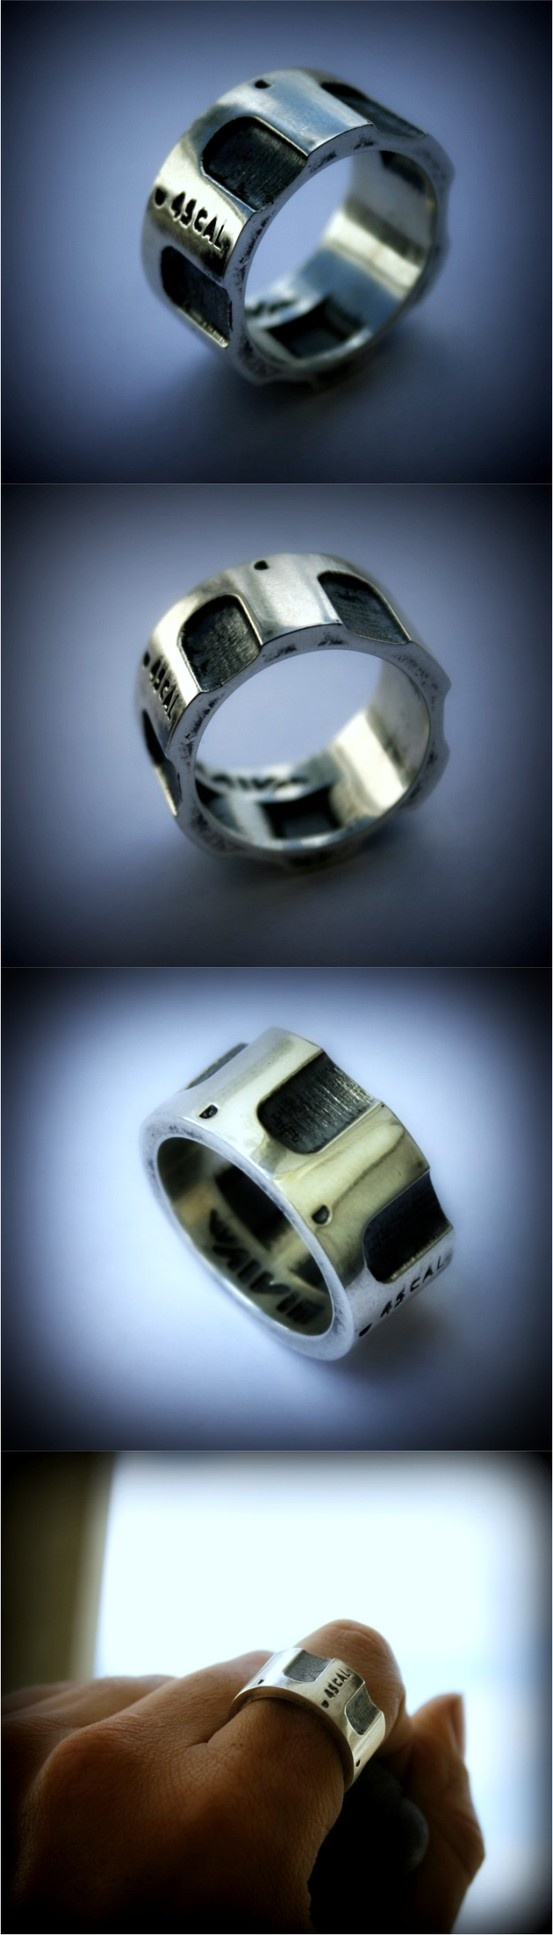 Colt 45 silver ring. I want one!